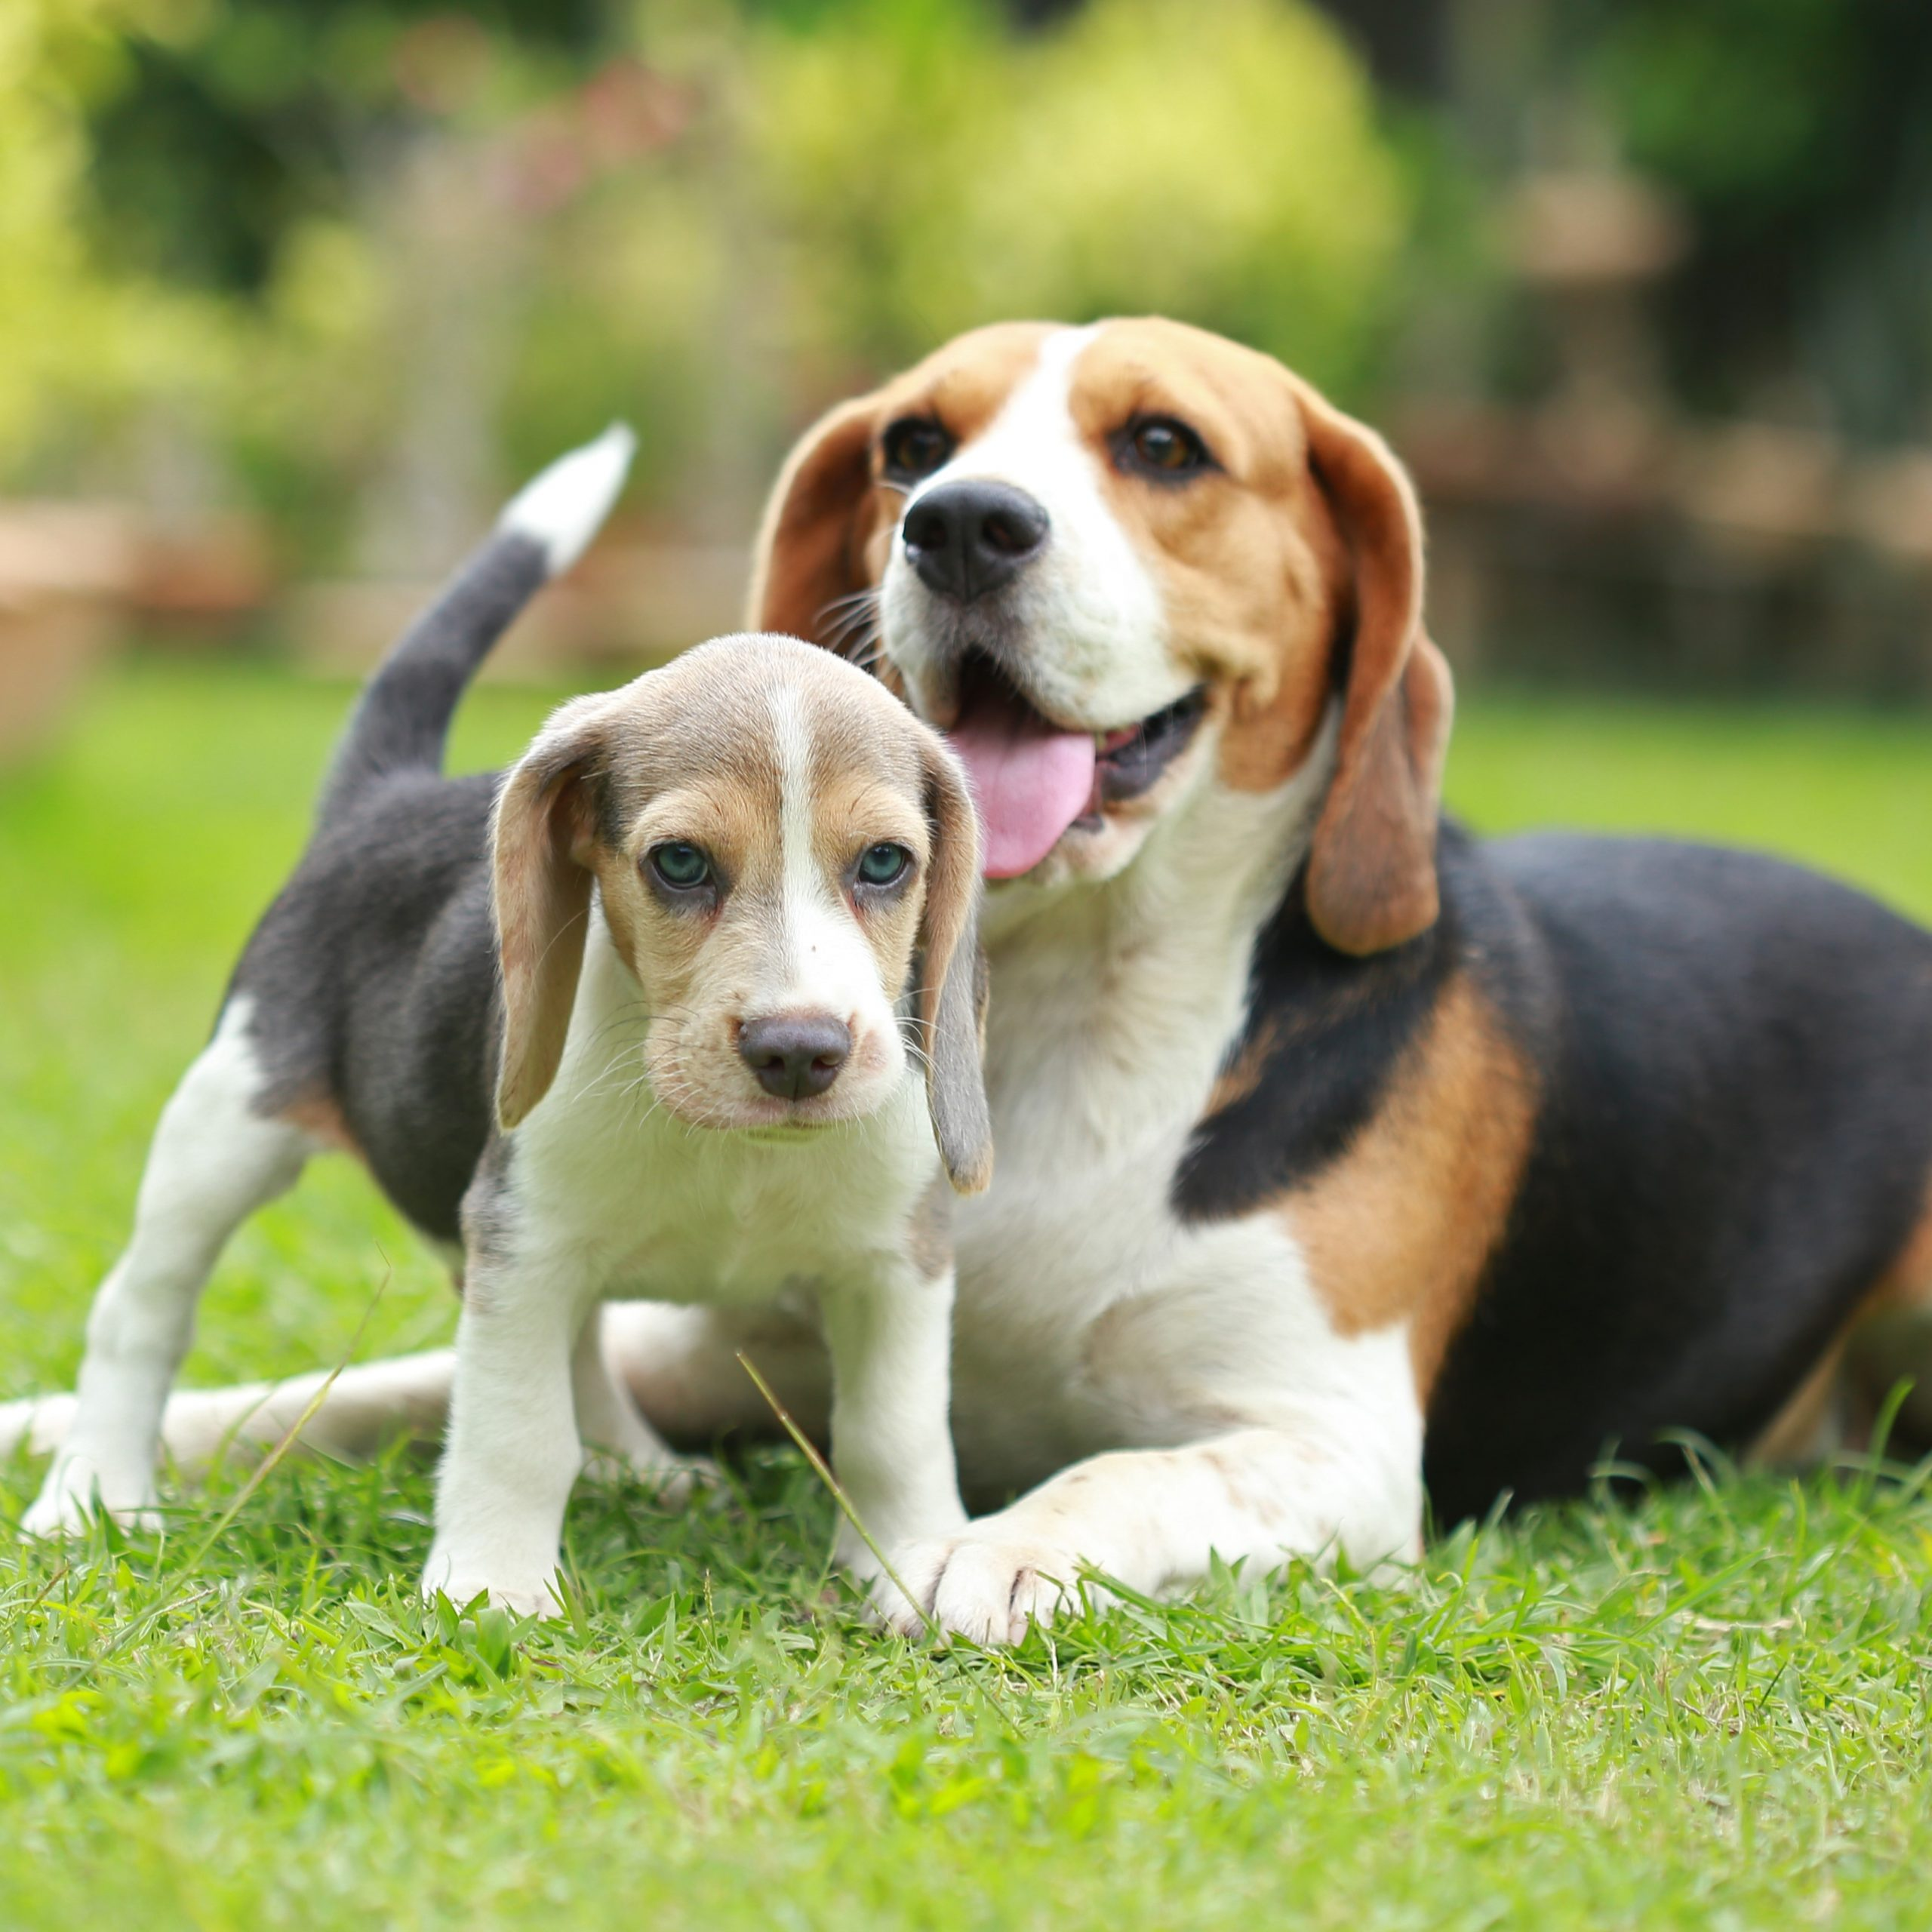 Beagle Dog Breed Information and Pictures